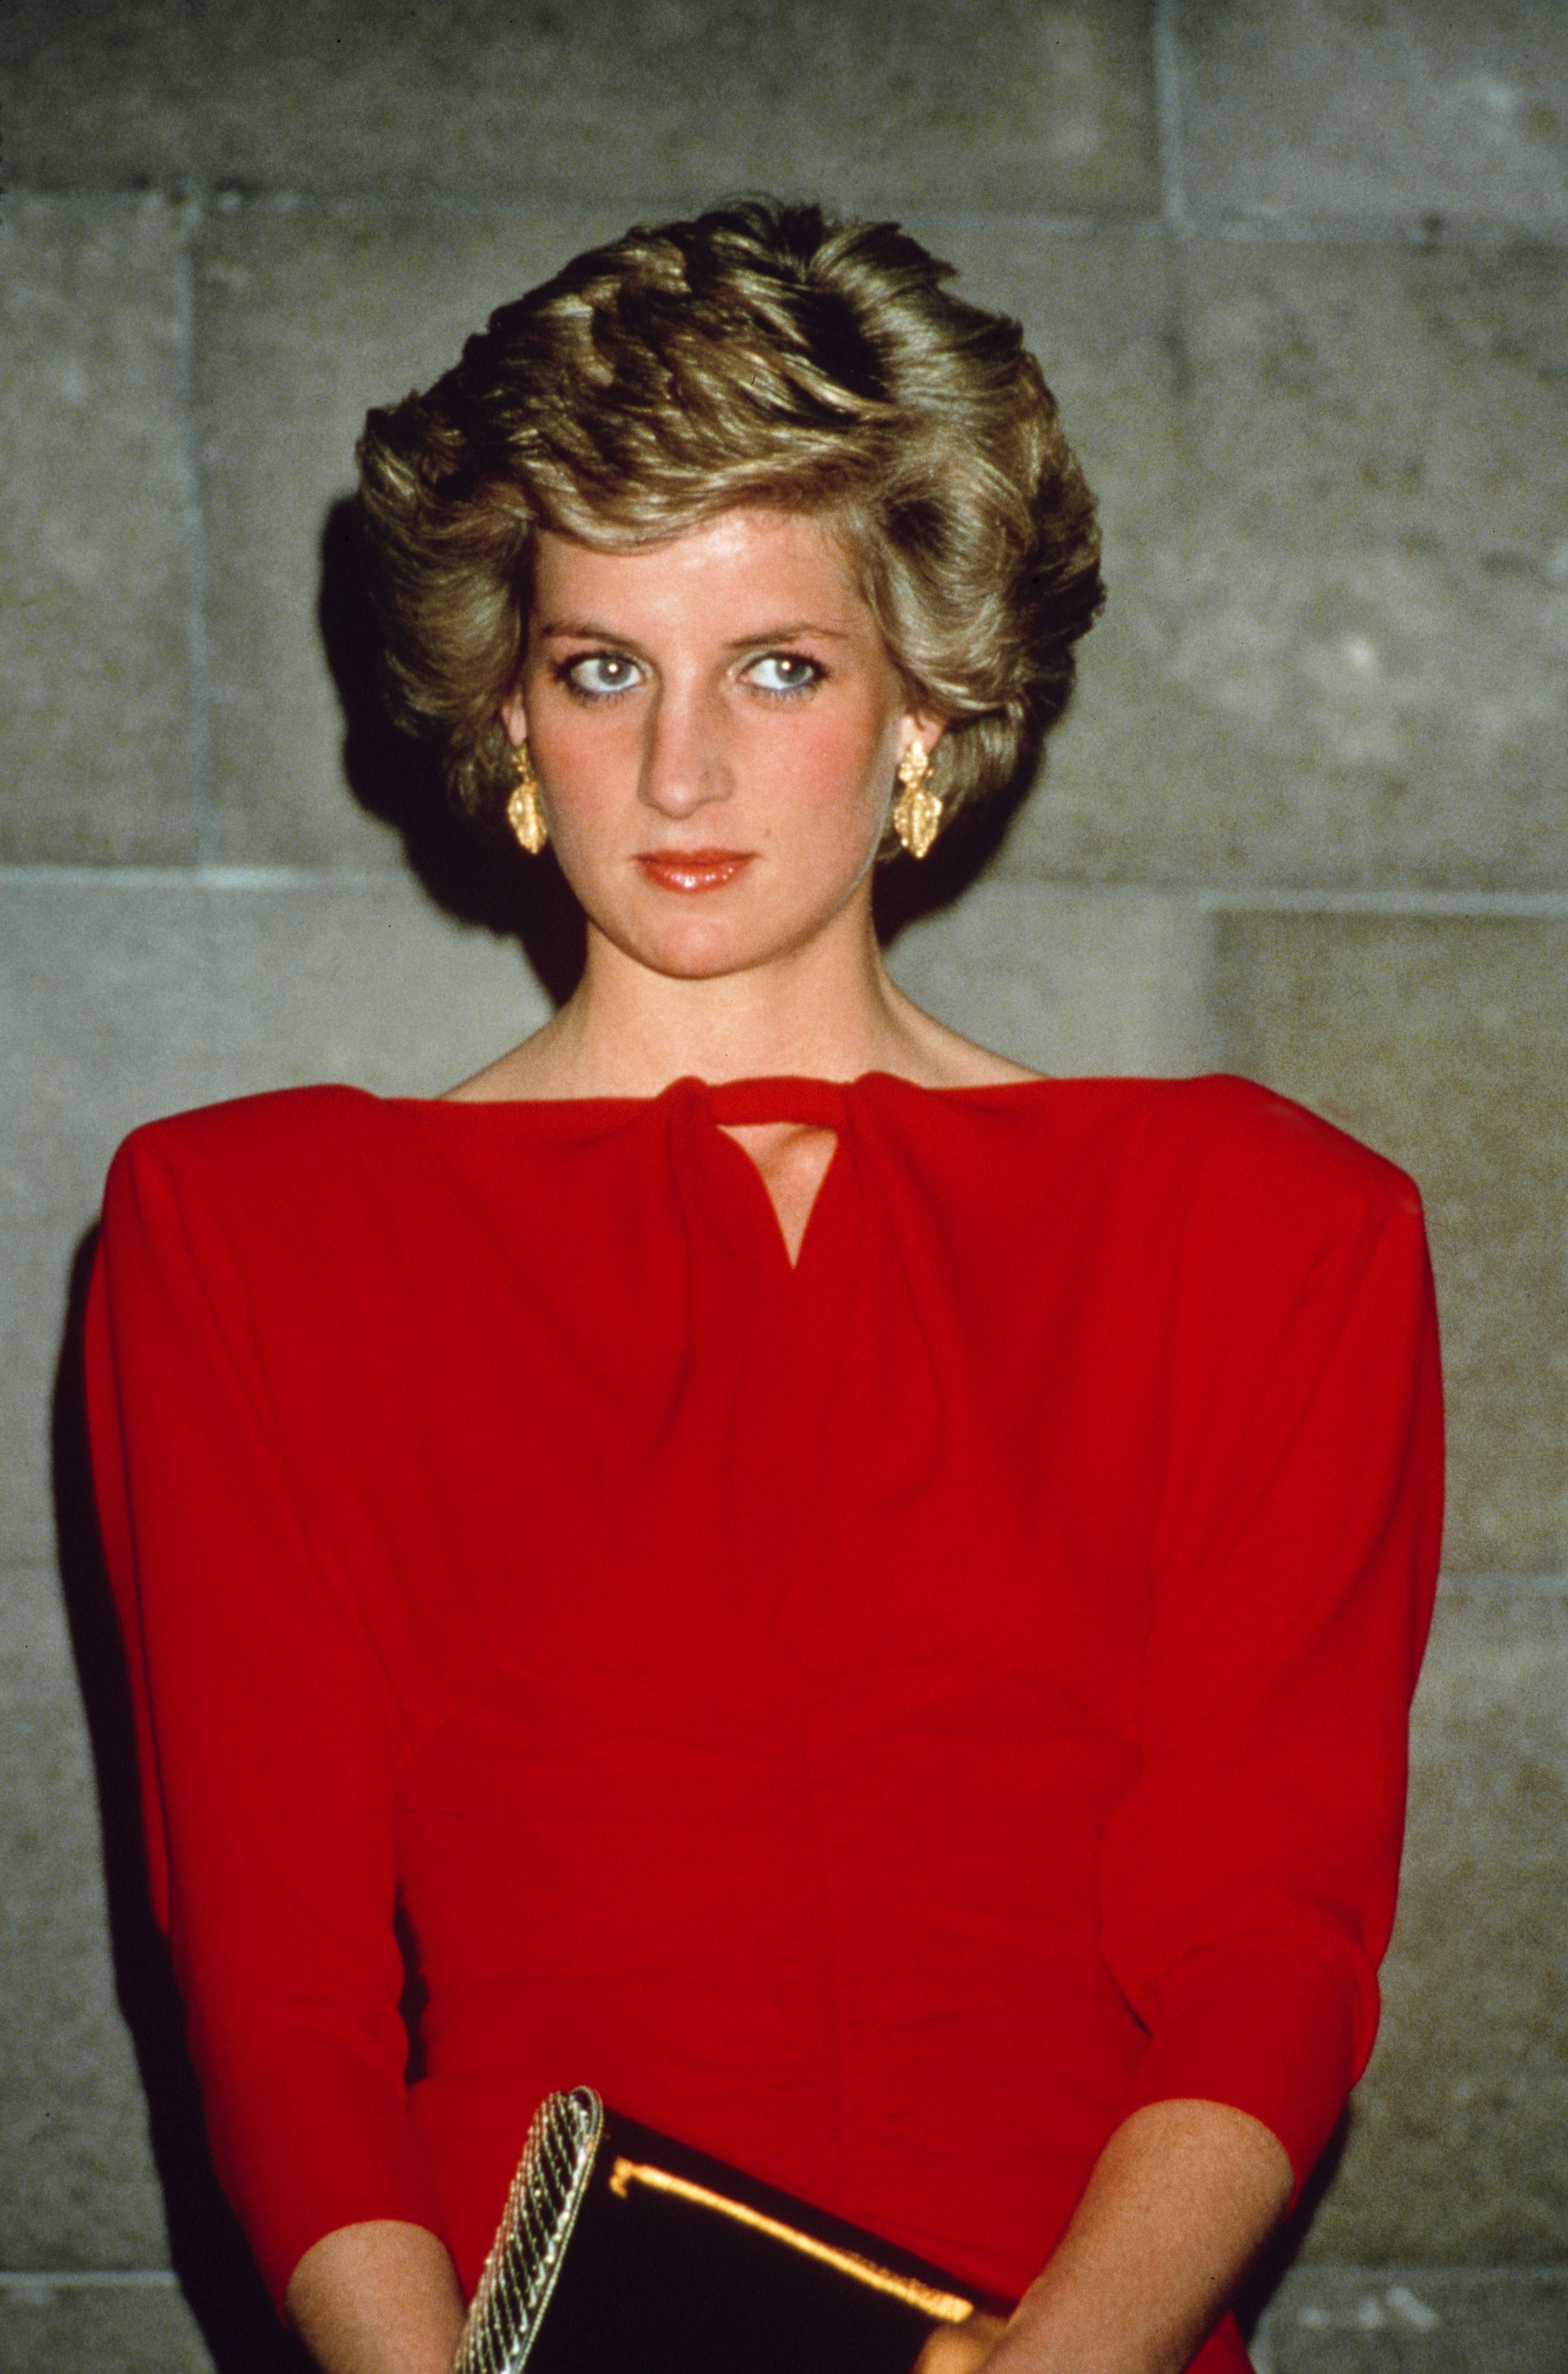 Princess Diana during a state reception in Melbourne, October 1988. | Source: Getty Images